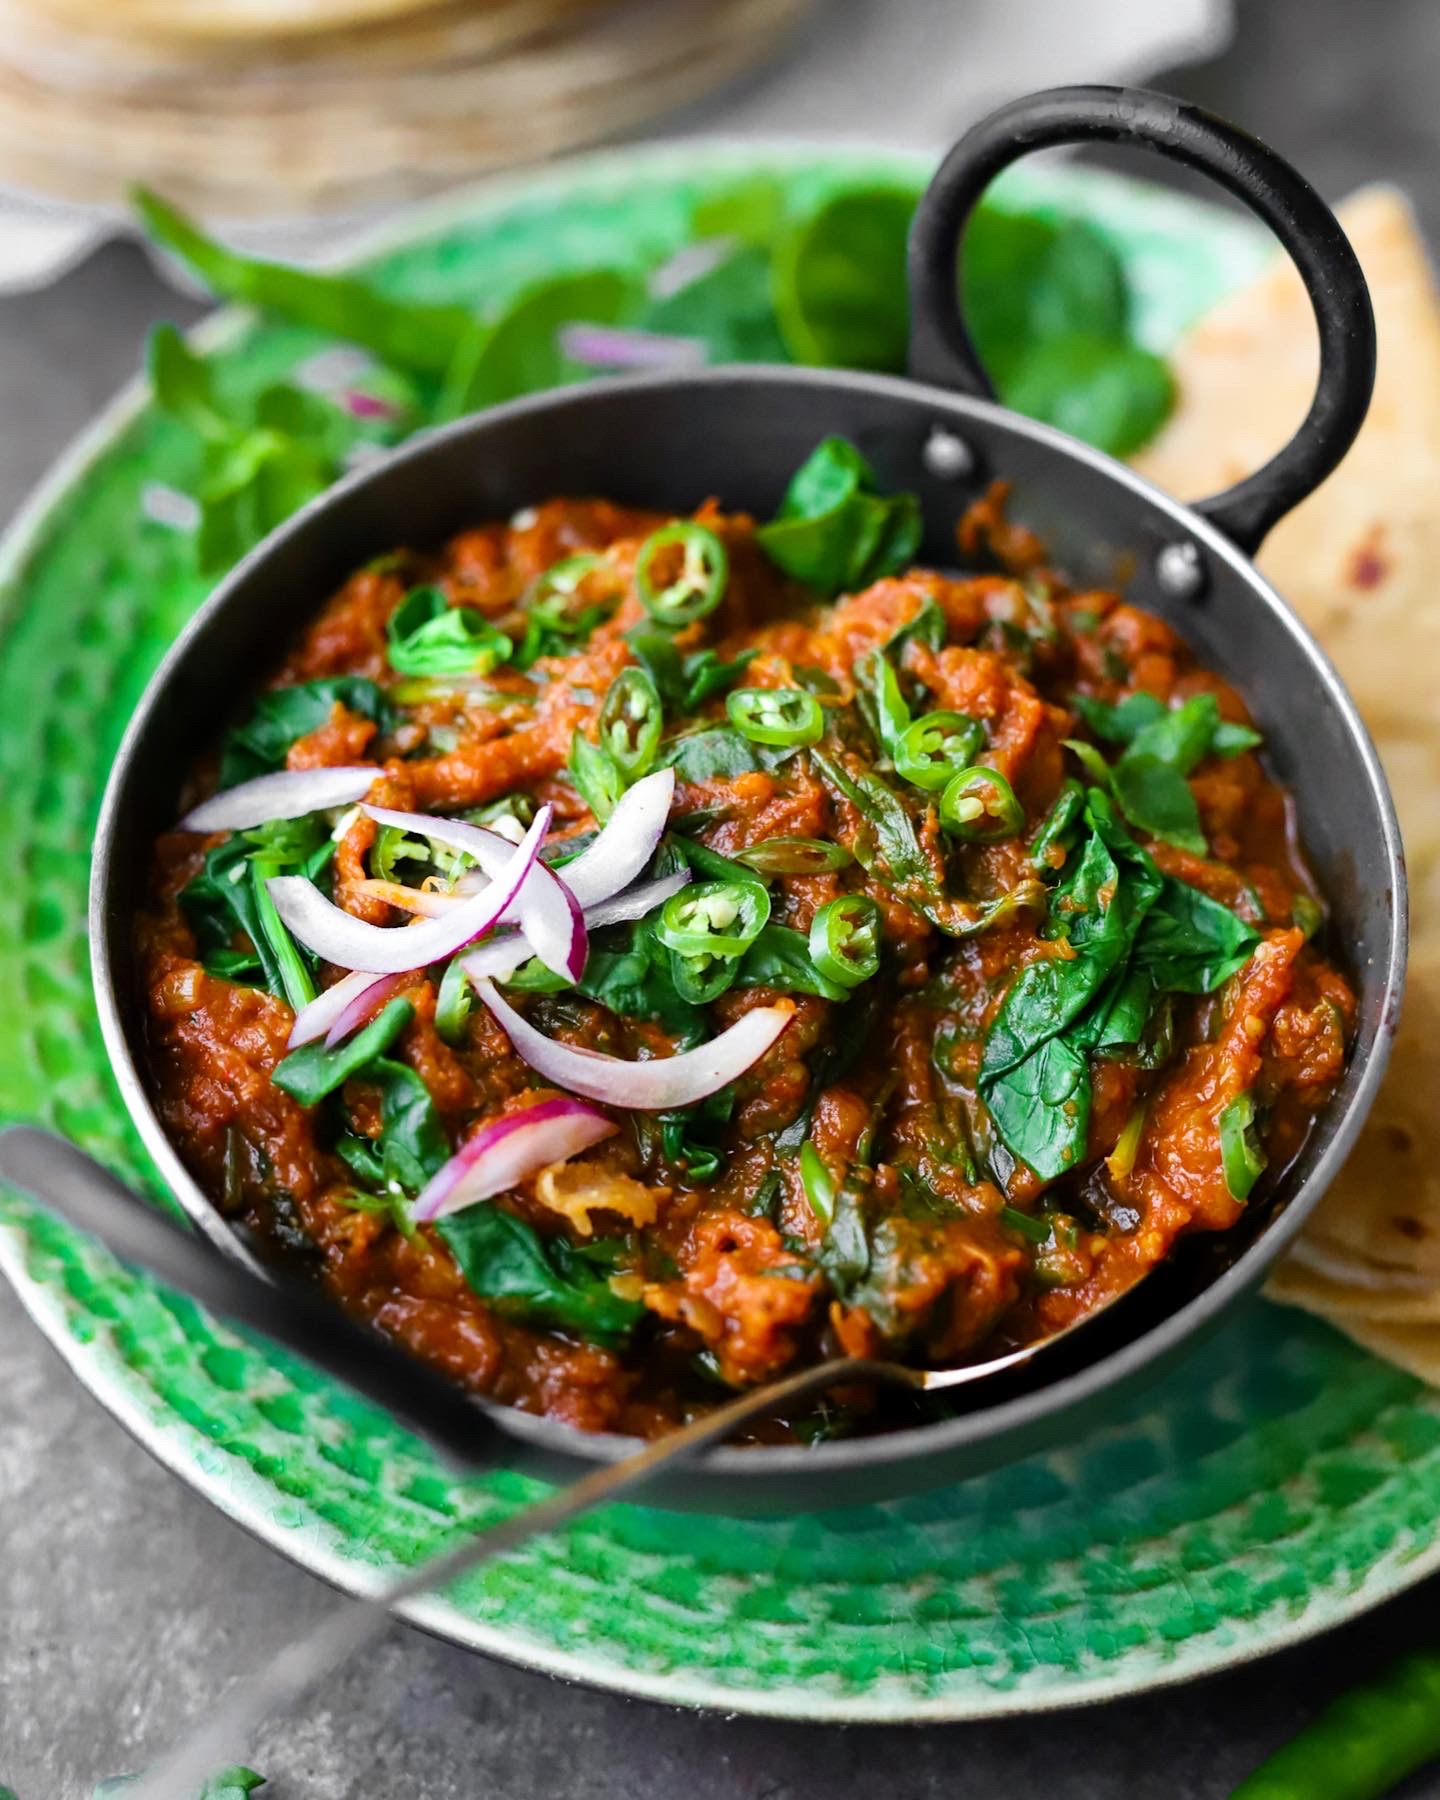 Burnt Aubergine & Spinach Curry 10 Easy Veg Curries for Roti